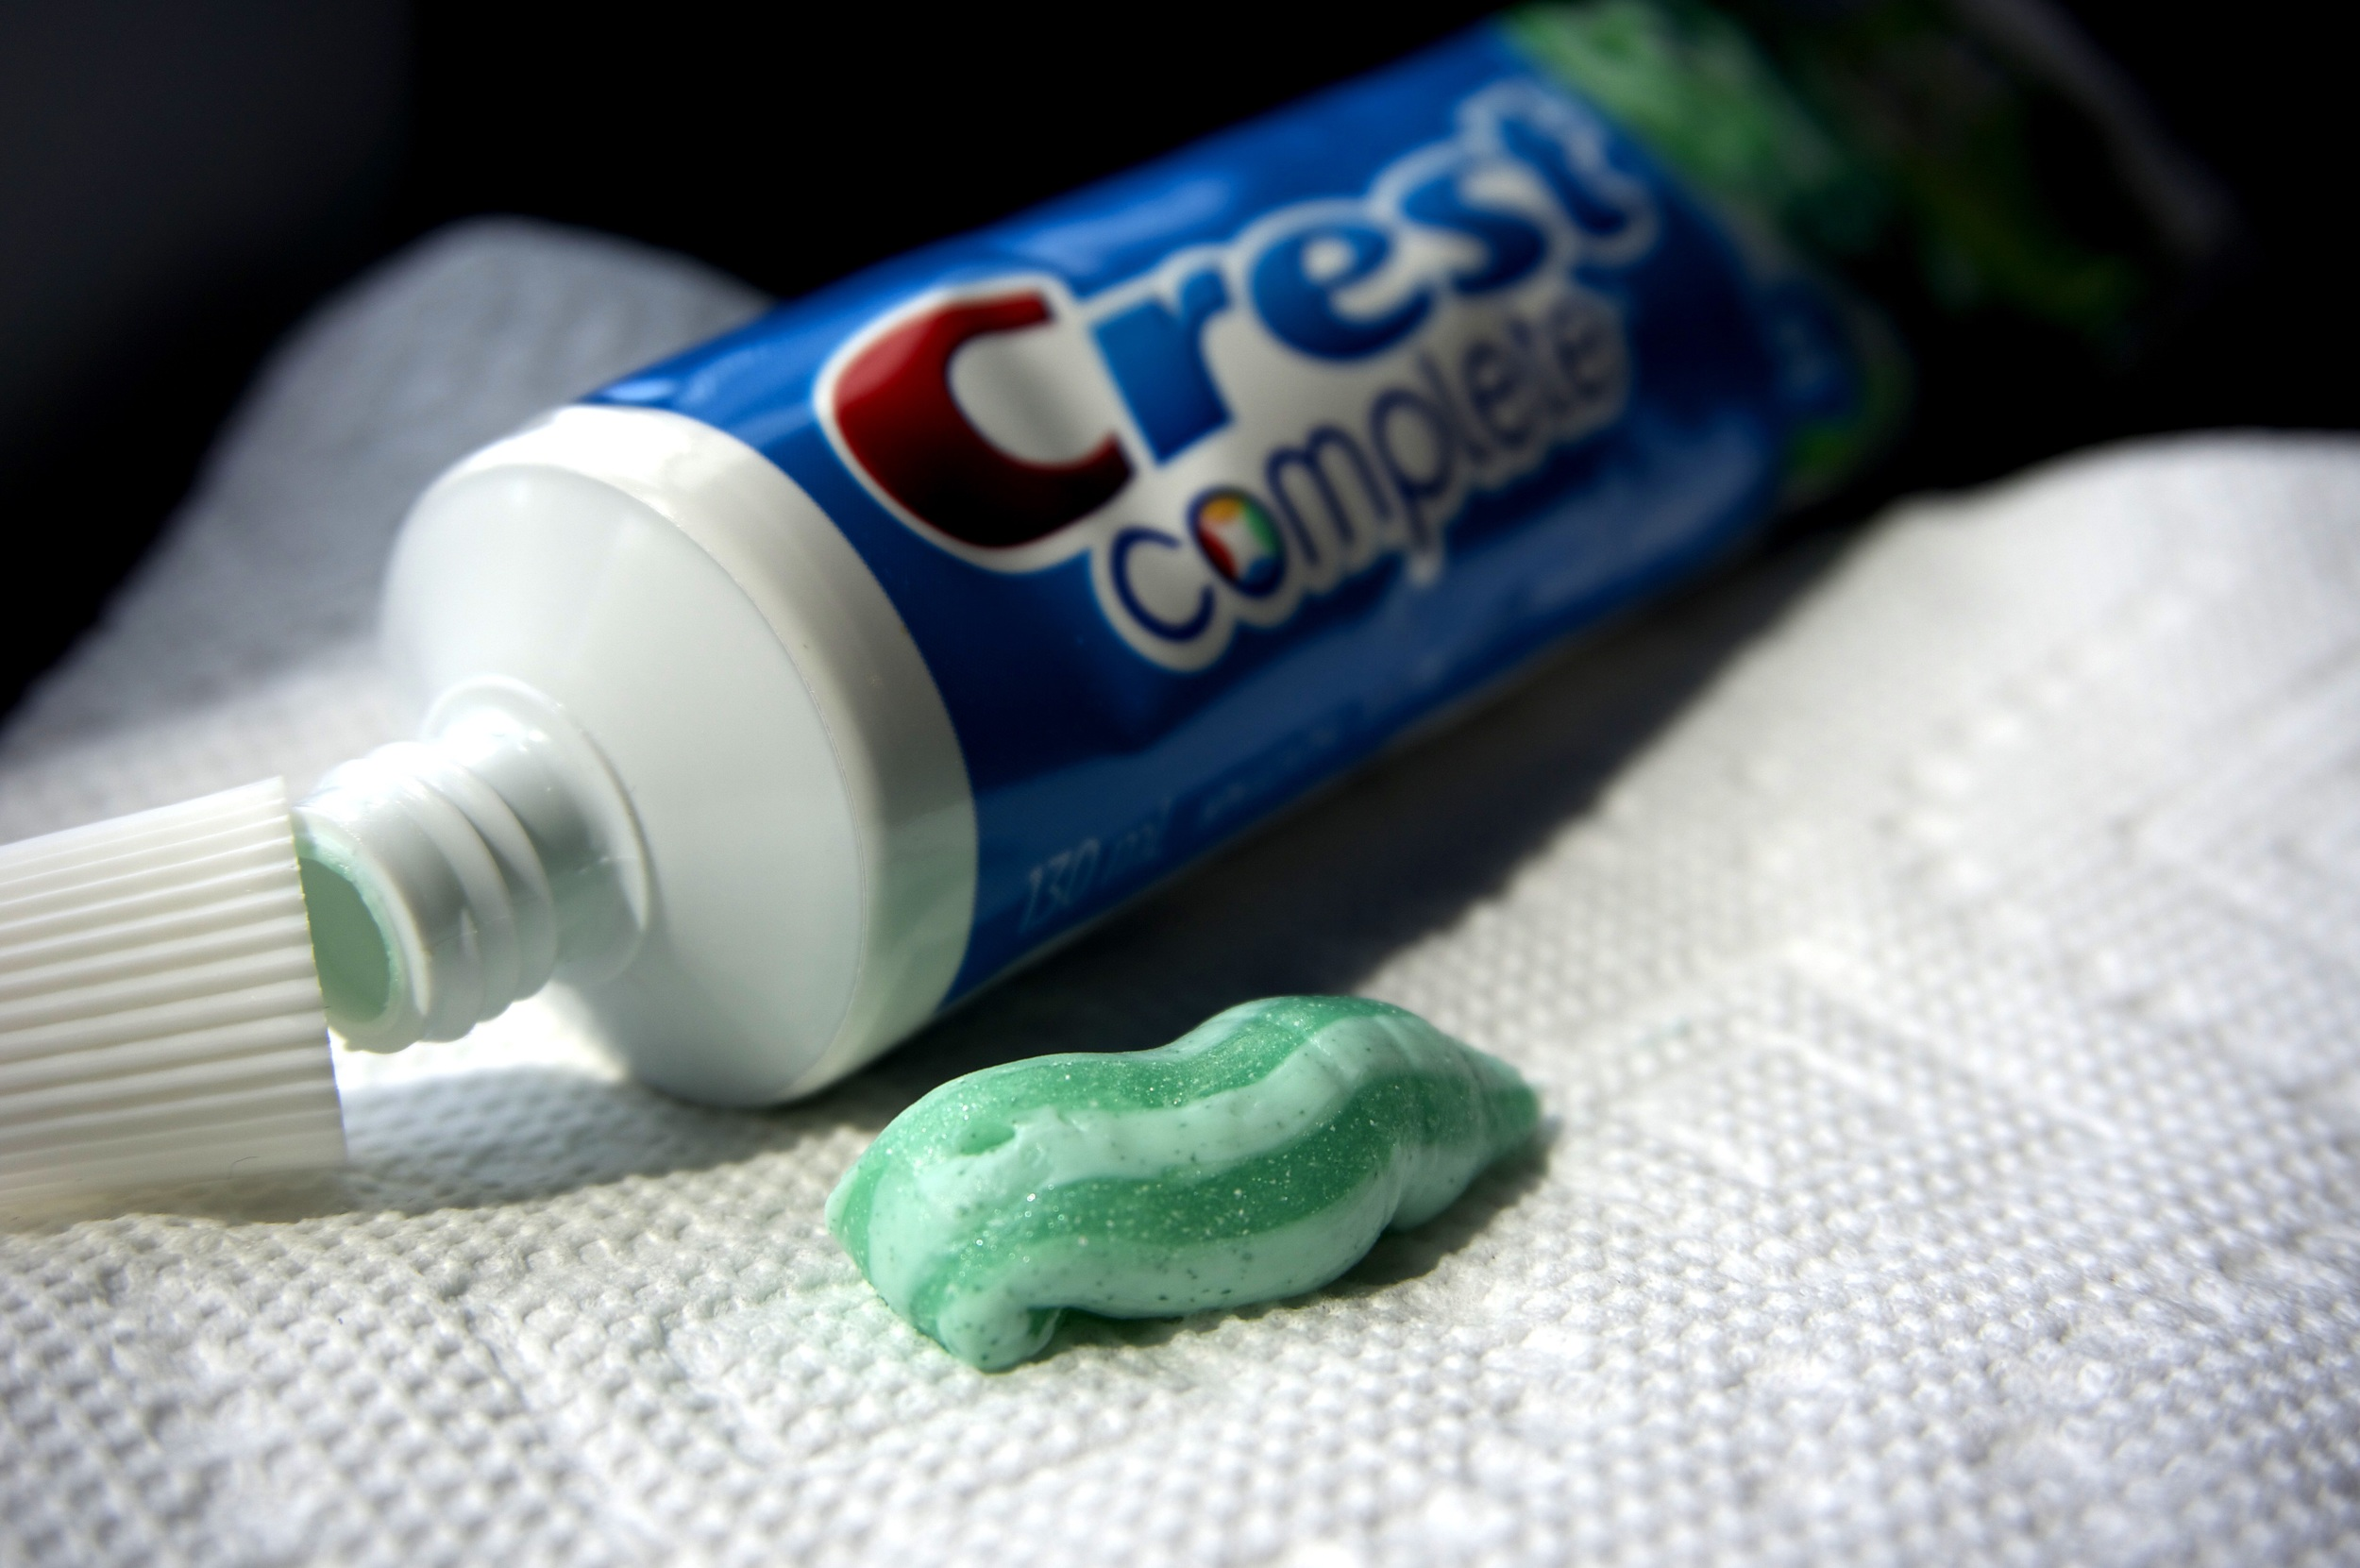 Tiny plastics unnecessarily added to personal care products such as soaps, facial cleansers, and as seen here, toothpaste. (Photo via Lake Ontario Waterkeeper)